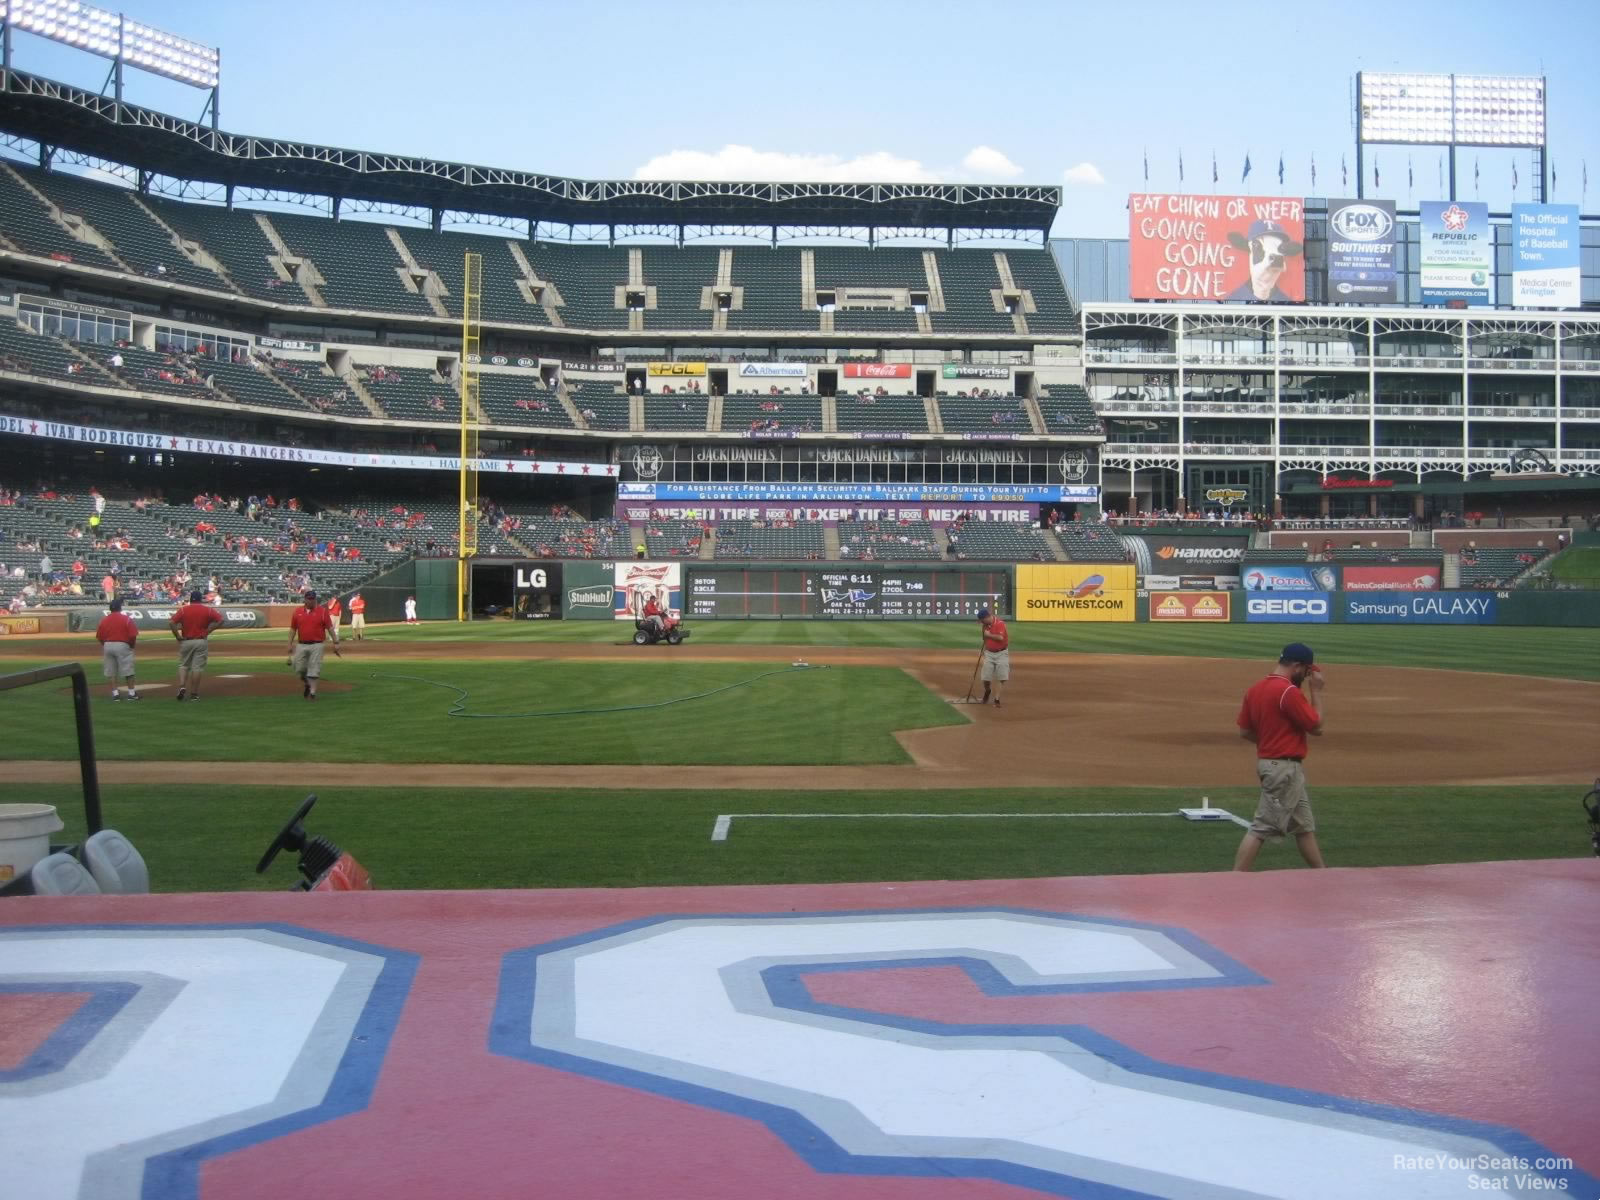 Rangers Ballpark Section 33 Row 4 Seat 12 2 on 4 18 2014k